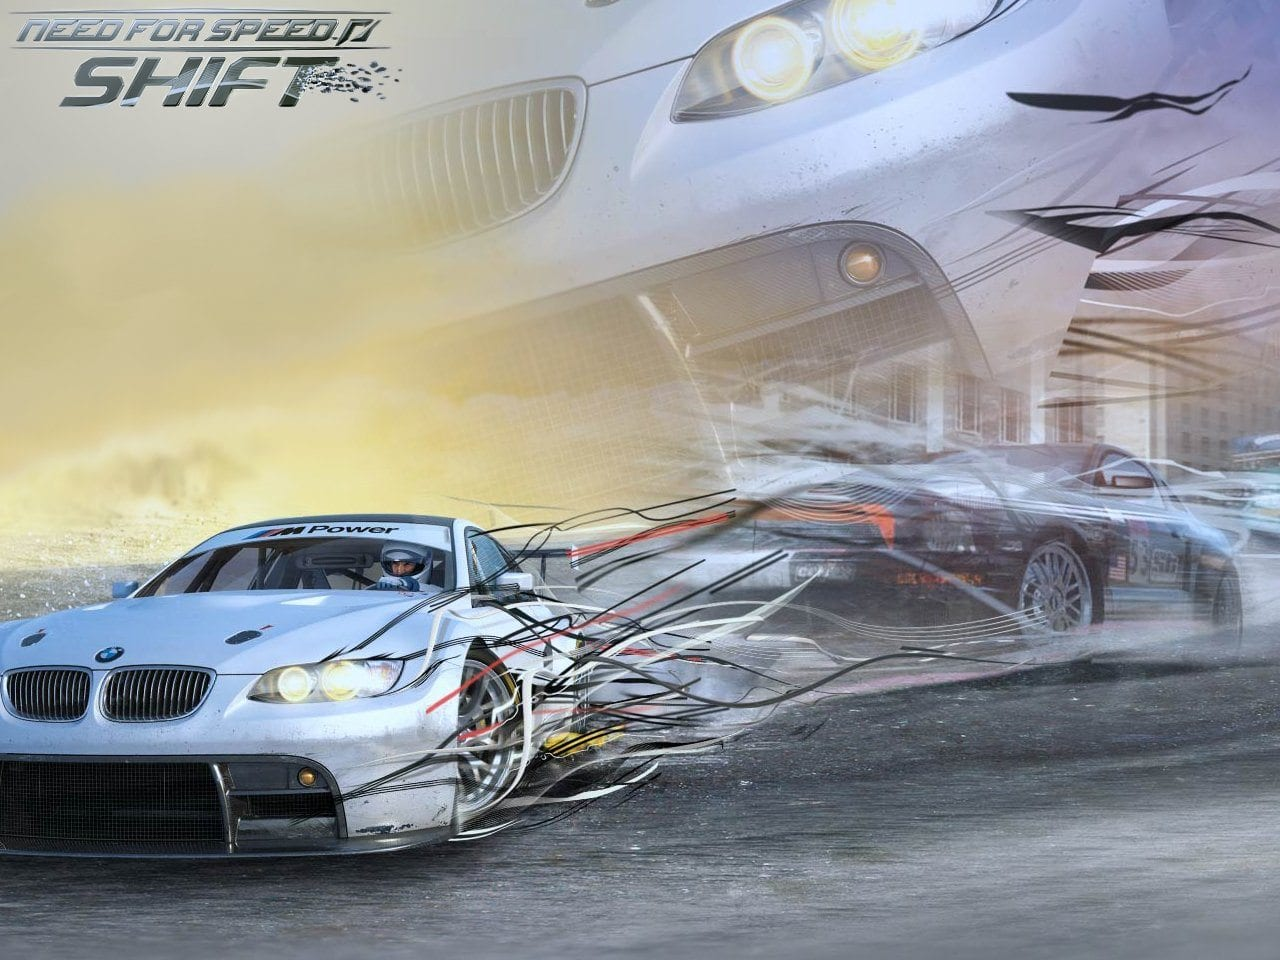 Need For Speed Shift features